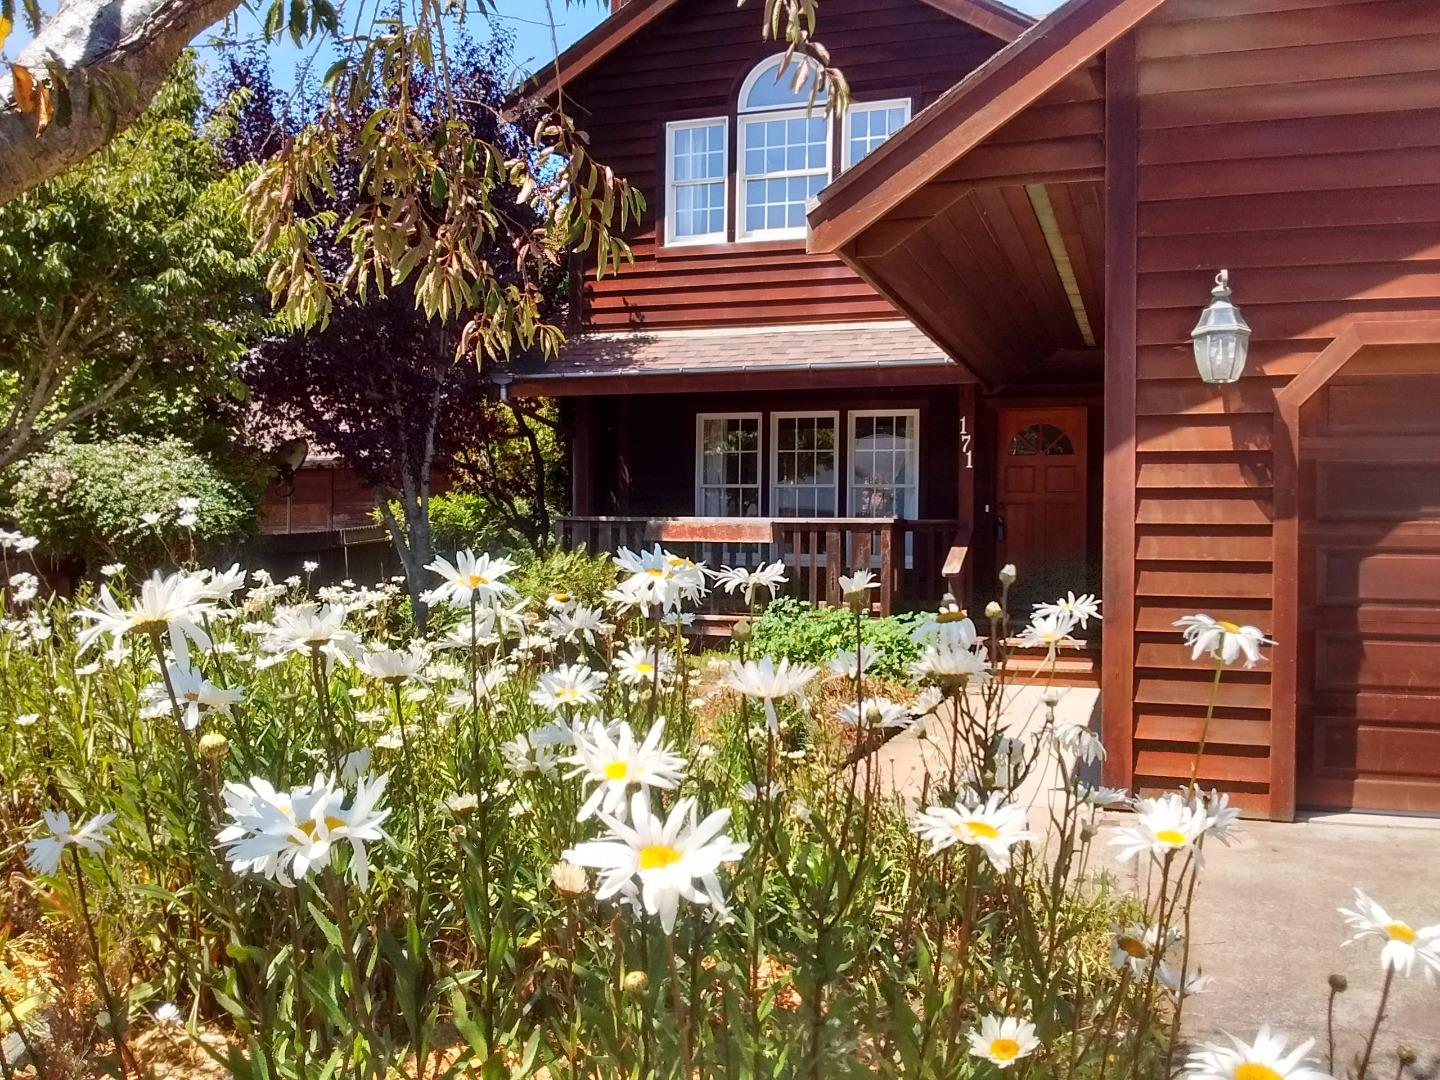 Single Family Home for Sale at 171 Ebbing Way Fort Bragg, California 95437 United States